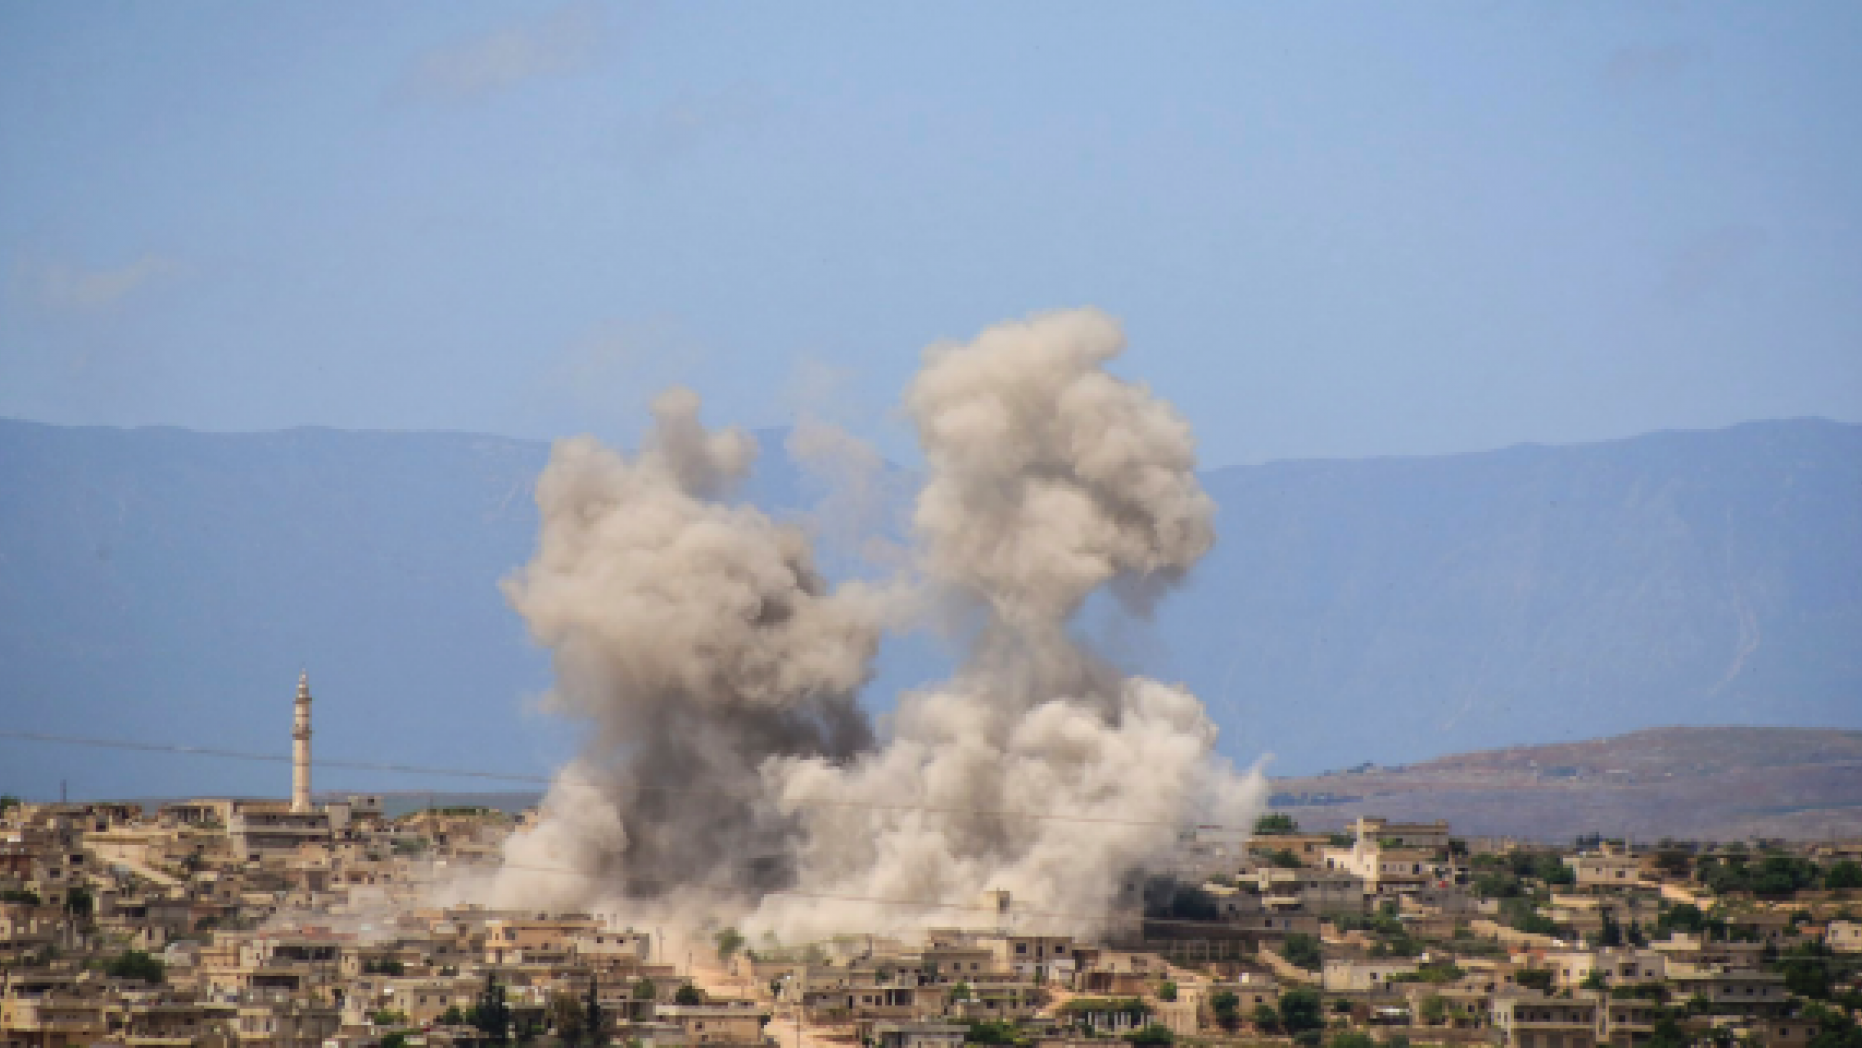 FILE - In this May 3, 2019 file photo, provided by the Syrian Civil Defense White Helmets, which has been authenticated based on its contents and other AP reporting, shows smoke rising after Syrian government and Russian airstrikes that hit the town of al-Habeet, southern Idlib, Syria. In their latest assault on the last rebel-stronghold of Idlib, the Syrian government and its Russian backer have resorted to familiar tactics to break the will of people and pressure civilians to flee: Target residential areas, bomb hospitals and markets, destroy civilian infrastructure. It is a well-established pattern that worked for President Bashar Assad